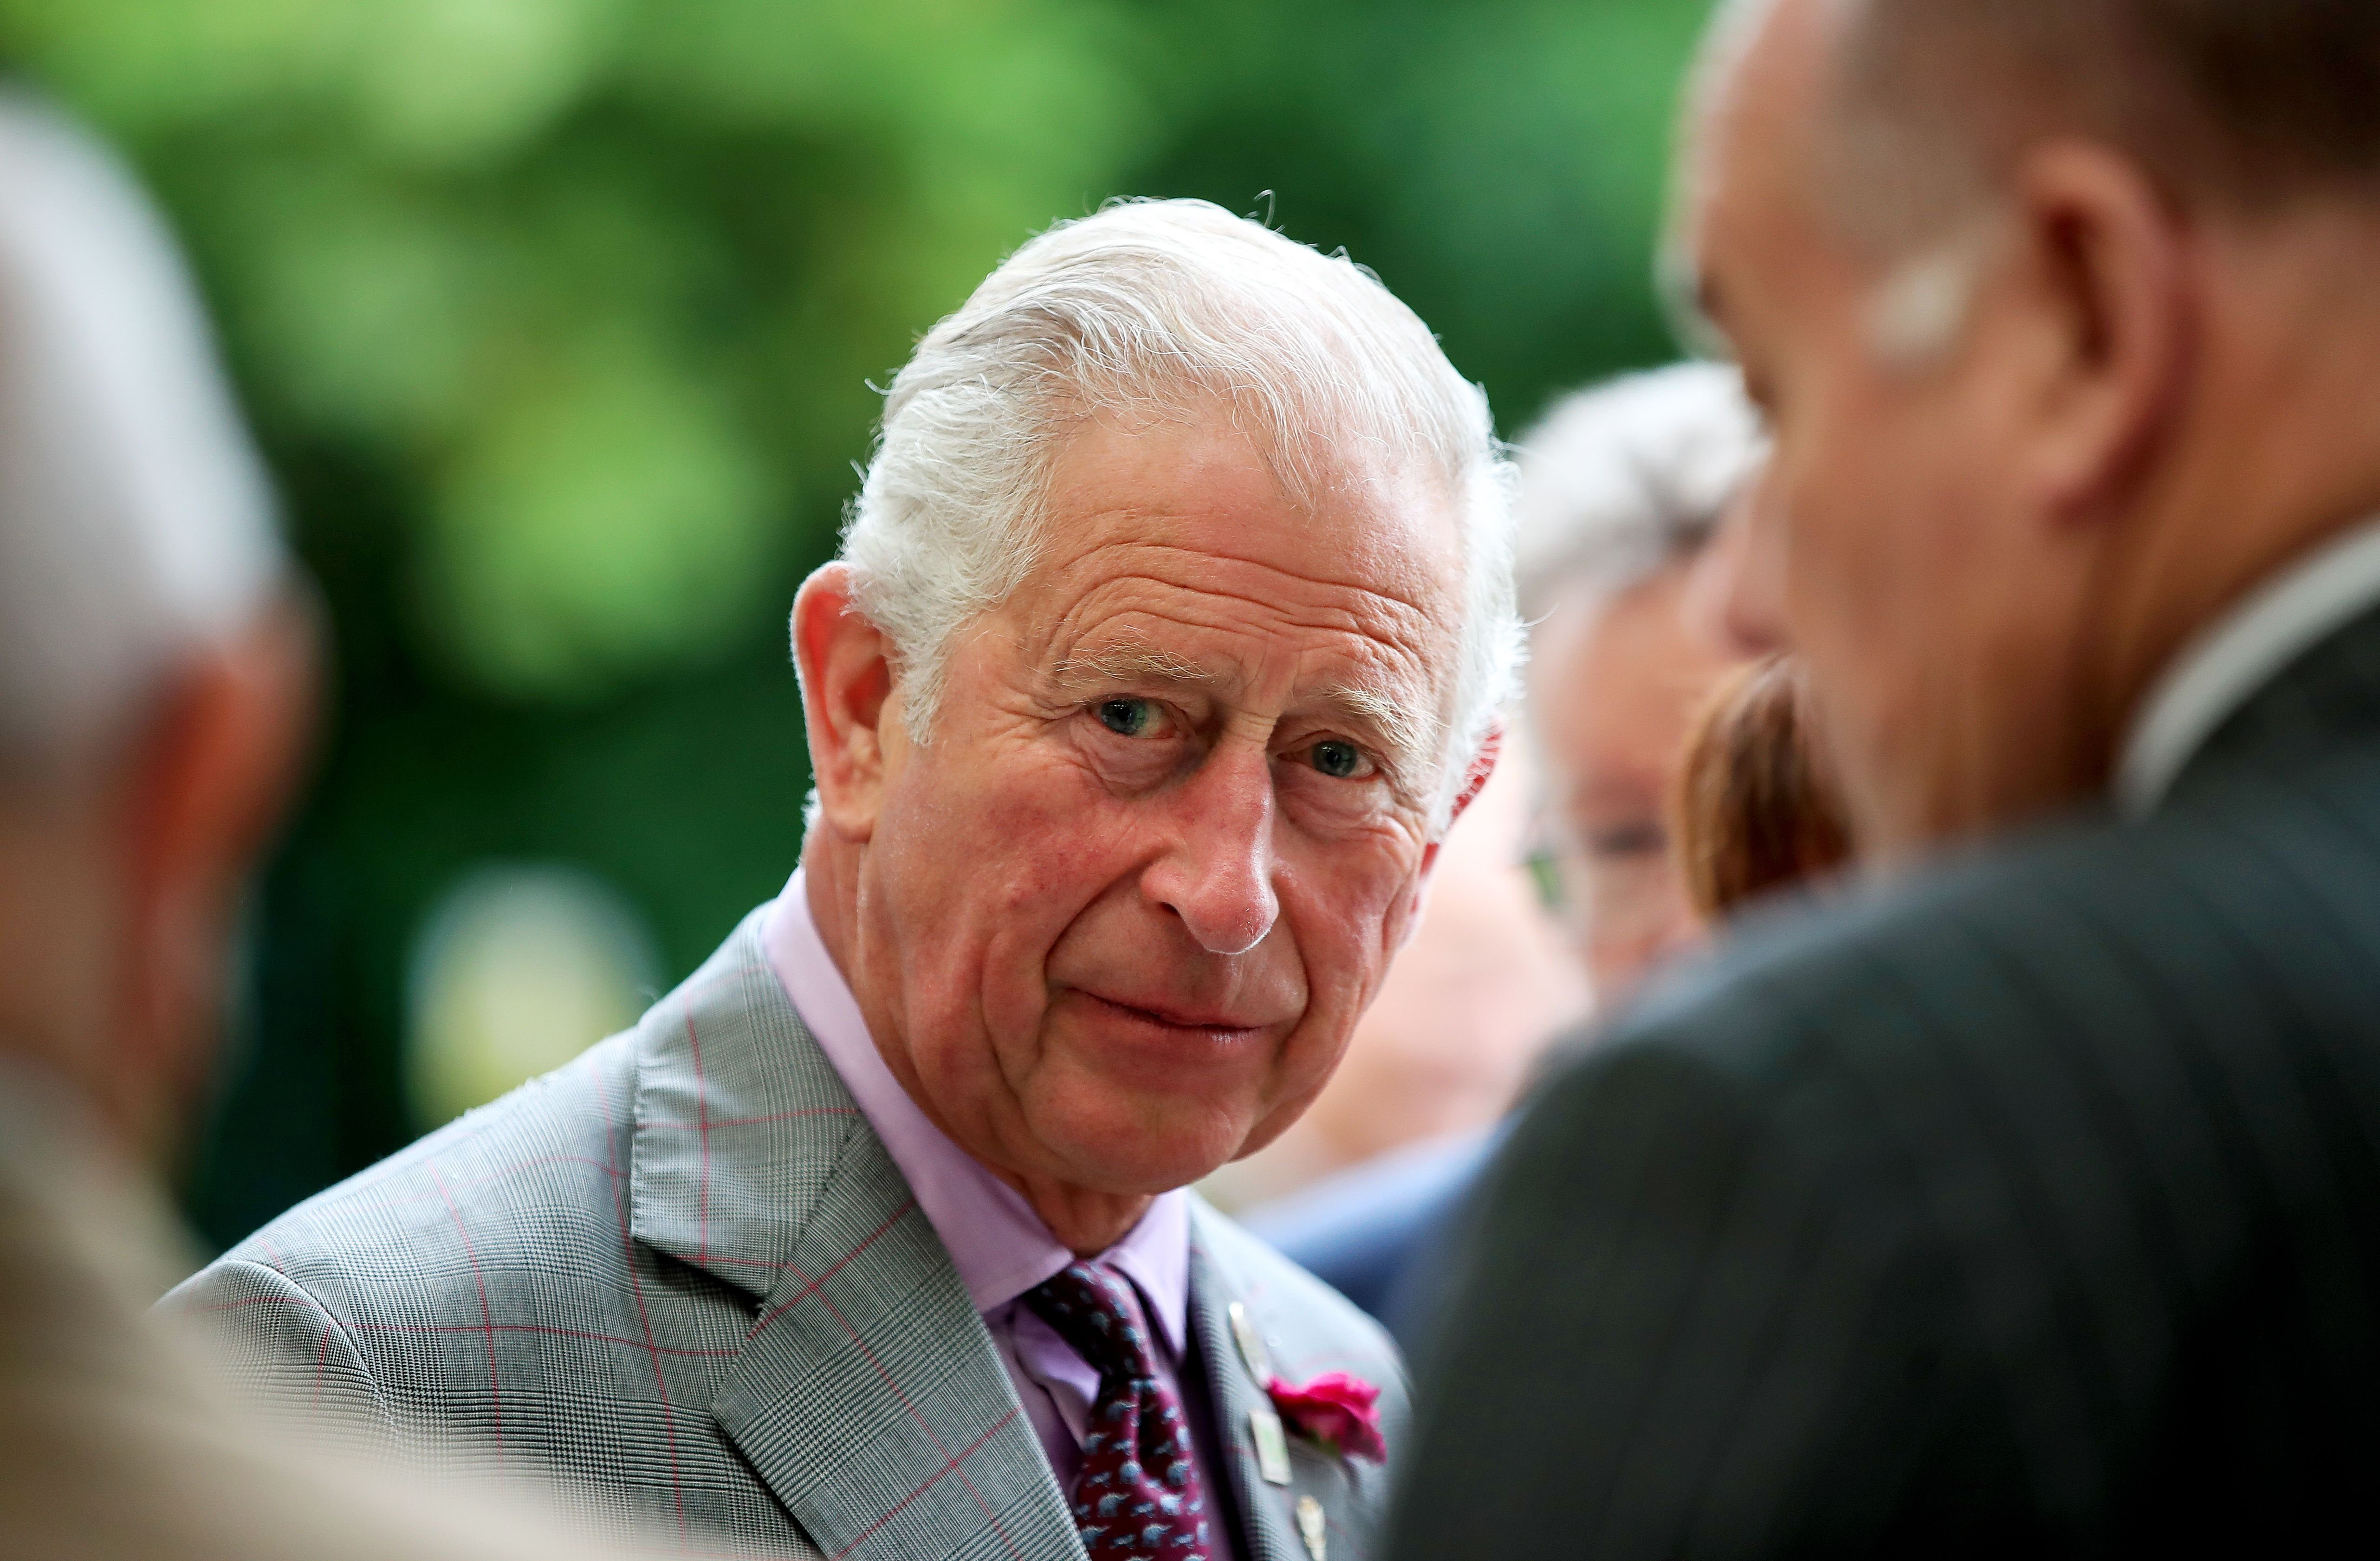 Prince Charles arrives for a visit to Woolcool in Stone, Staffordshire, to learn how they use sheep's wool to create alternative sustainable packaging for food and medicine. 19 Jul 2019